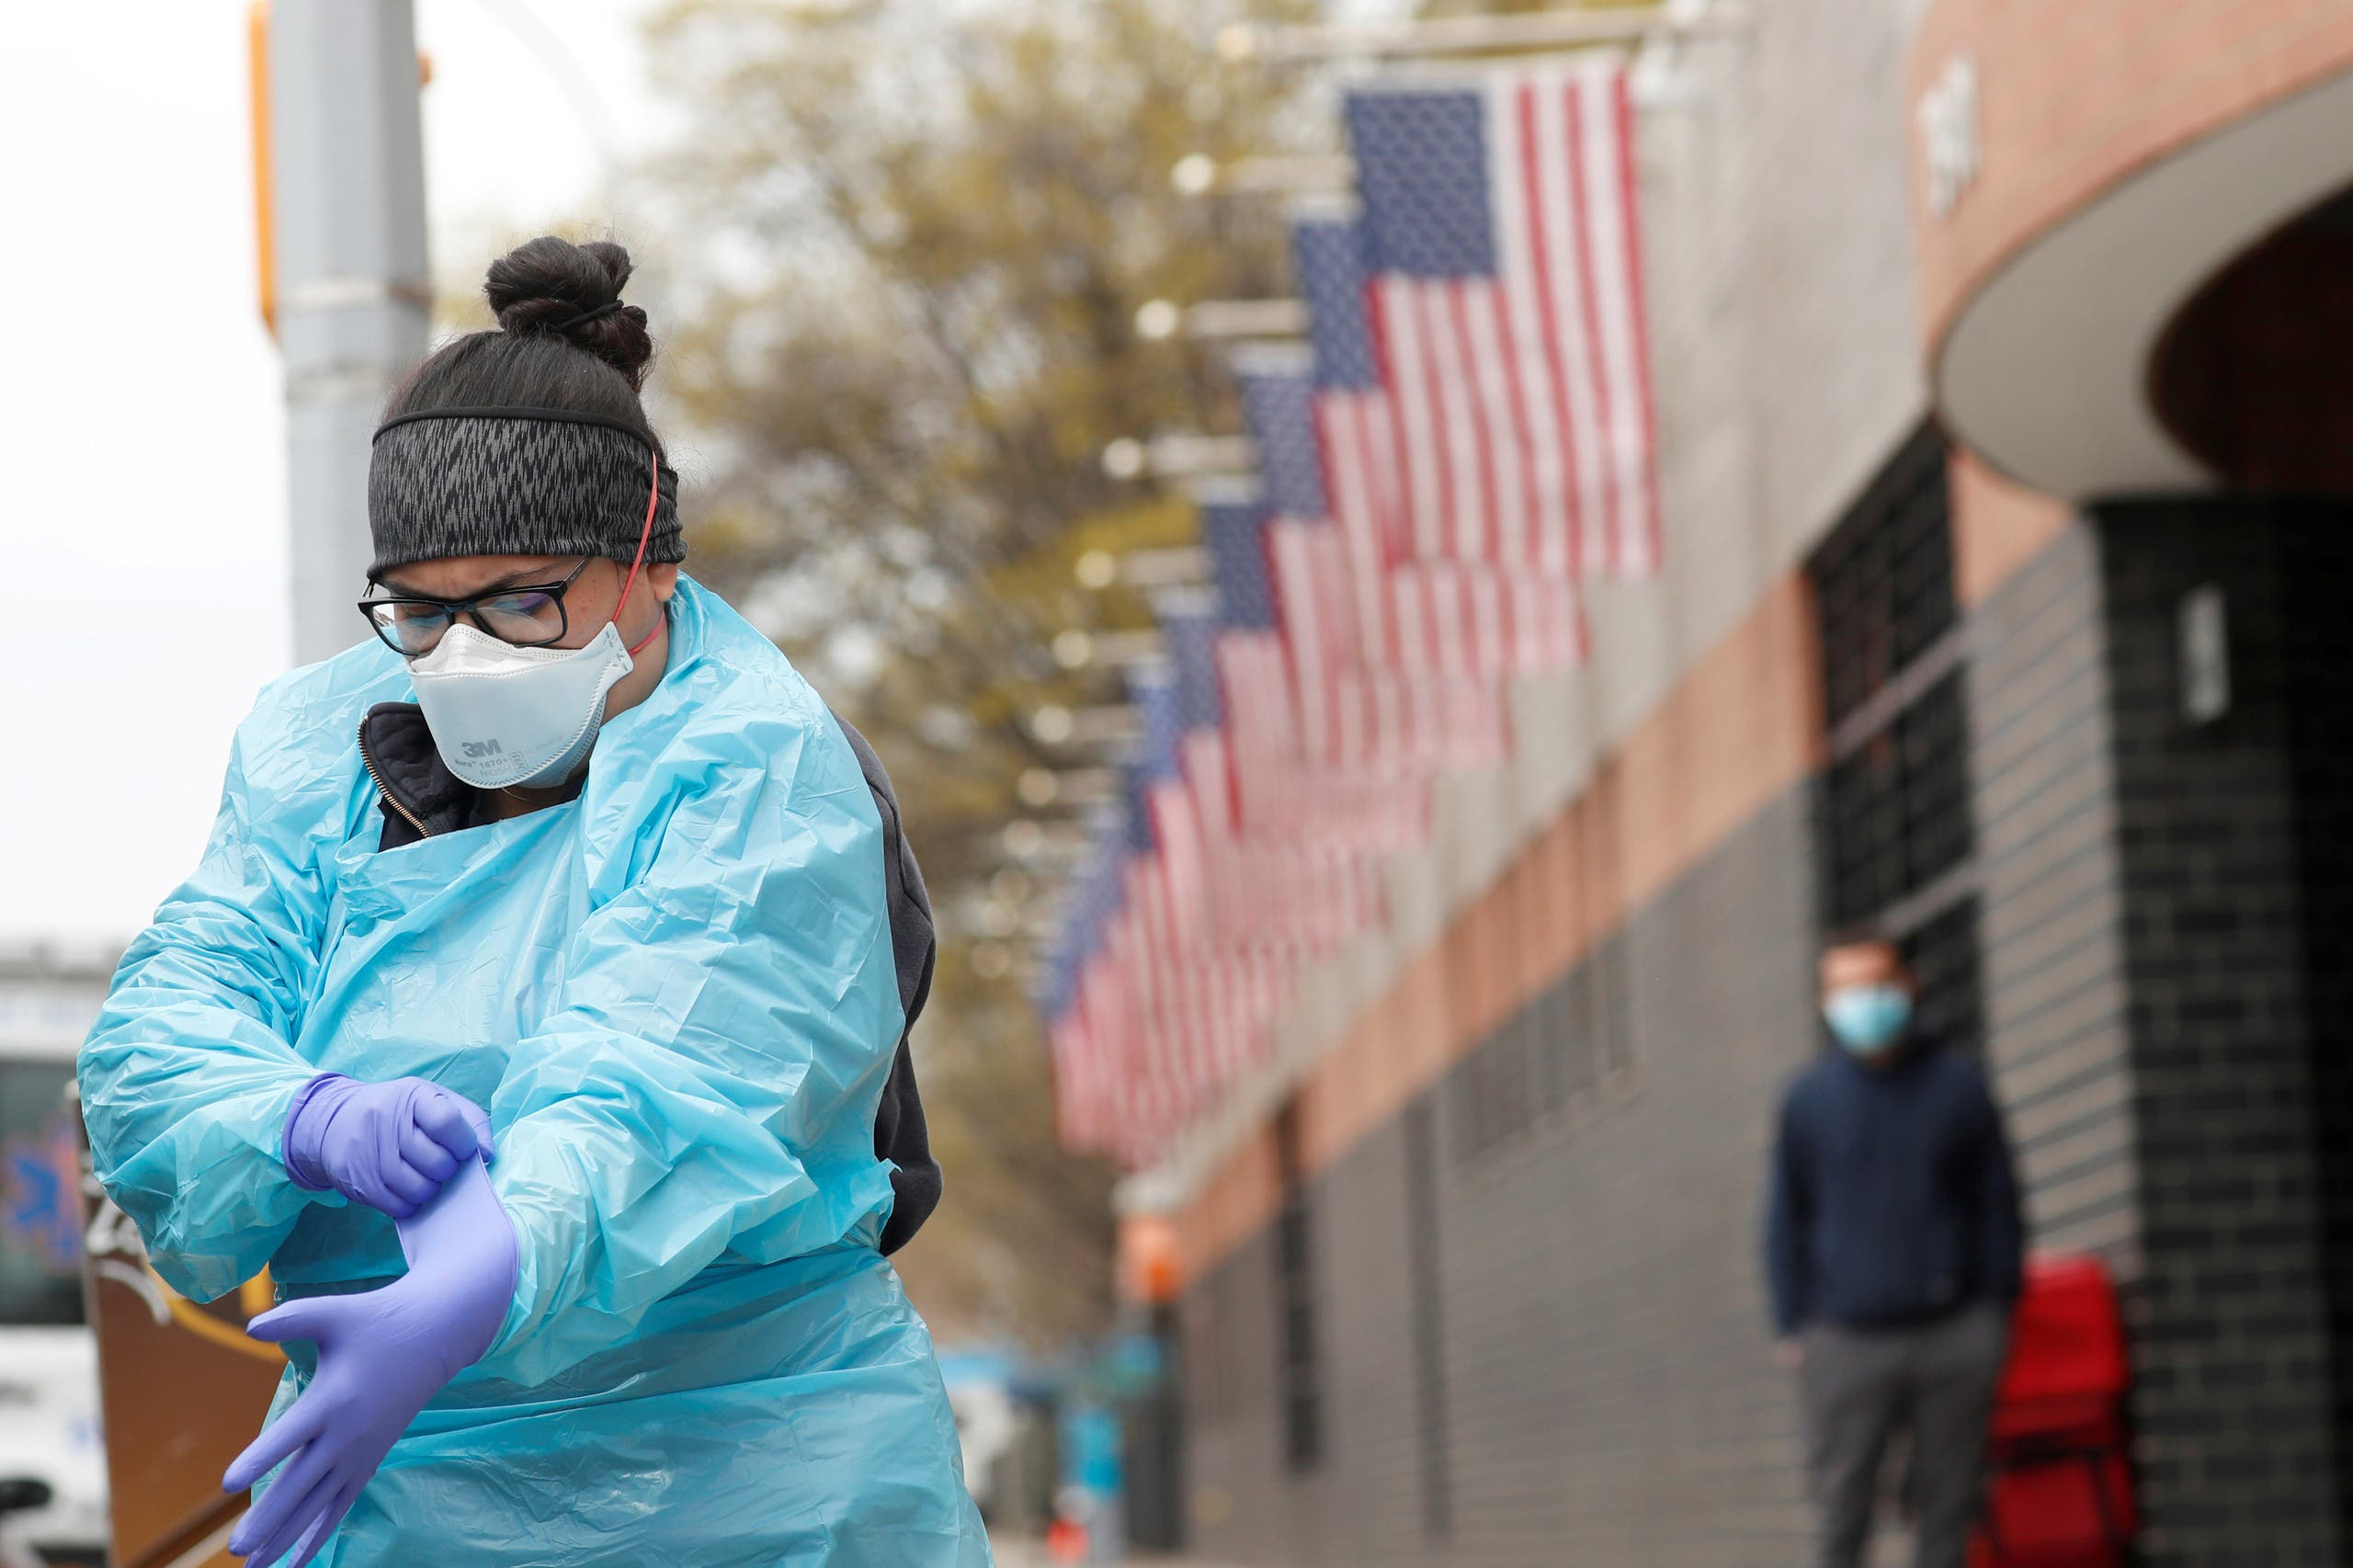 An Emergency Medical Technician (EMT) dons personal protective equipment before going into Elmhurst Hospital during the ongoing outbreak of the coronavirus in the Queens borough of New York, US. (File photo: Reuters)